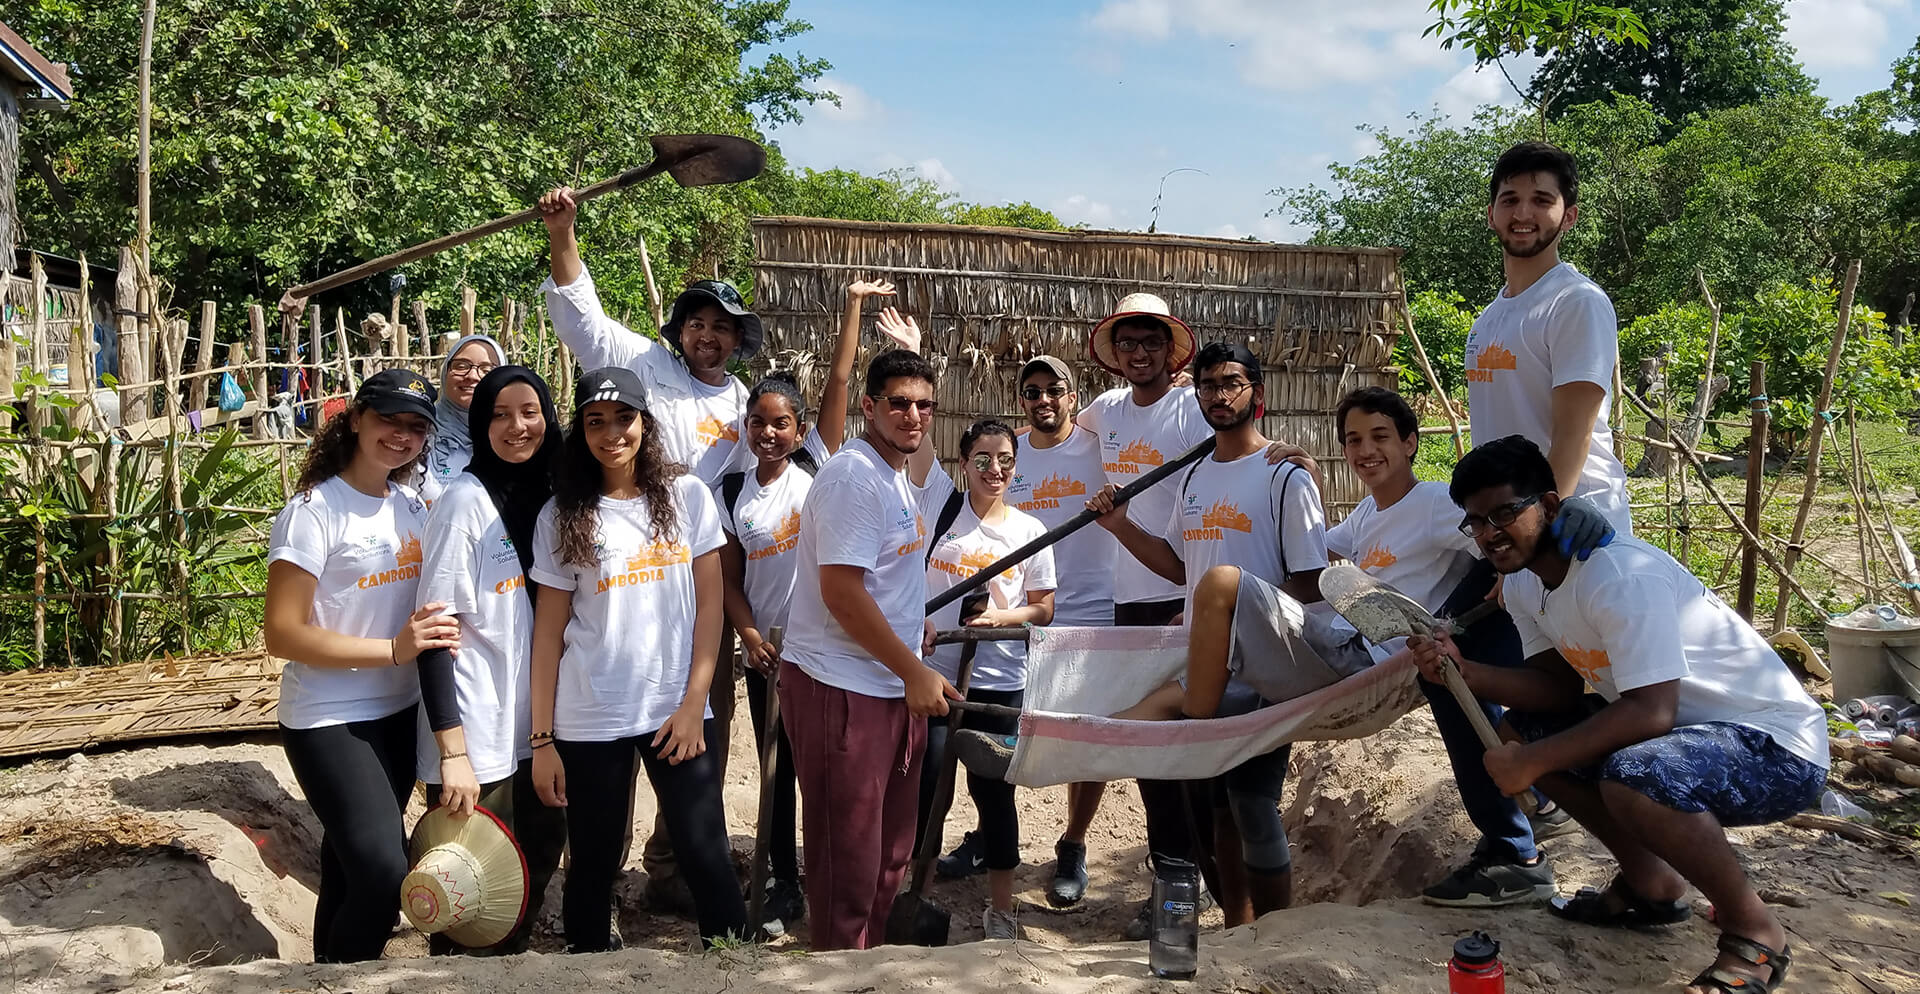 Volunteer Abroad Programs for High School Students & Under 18